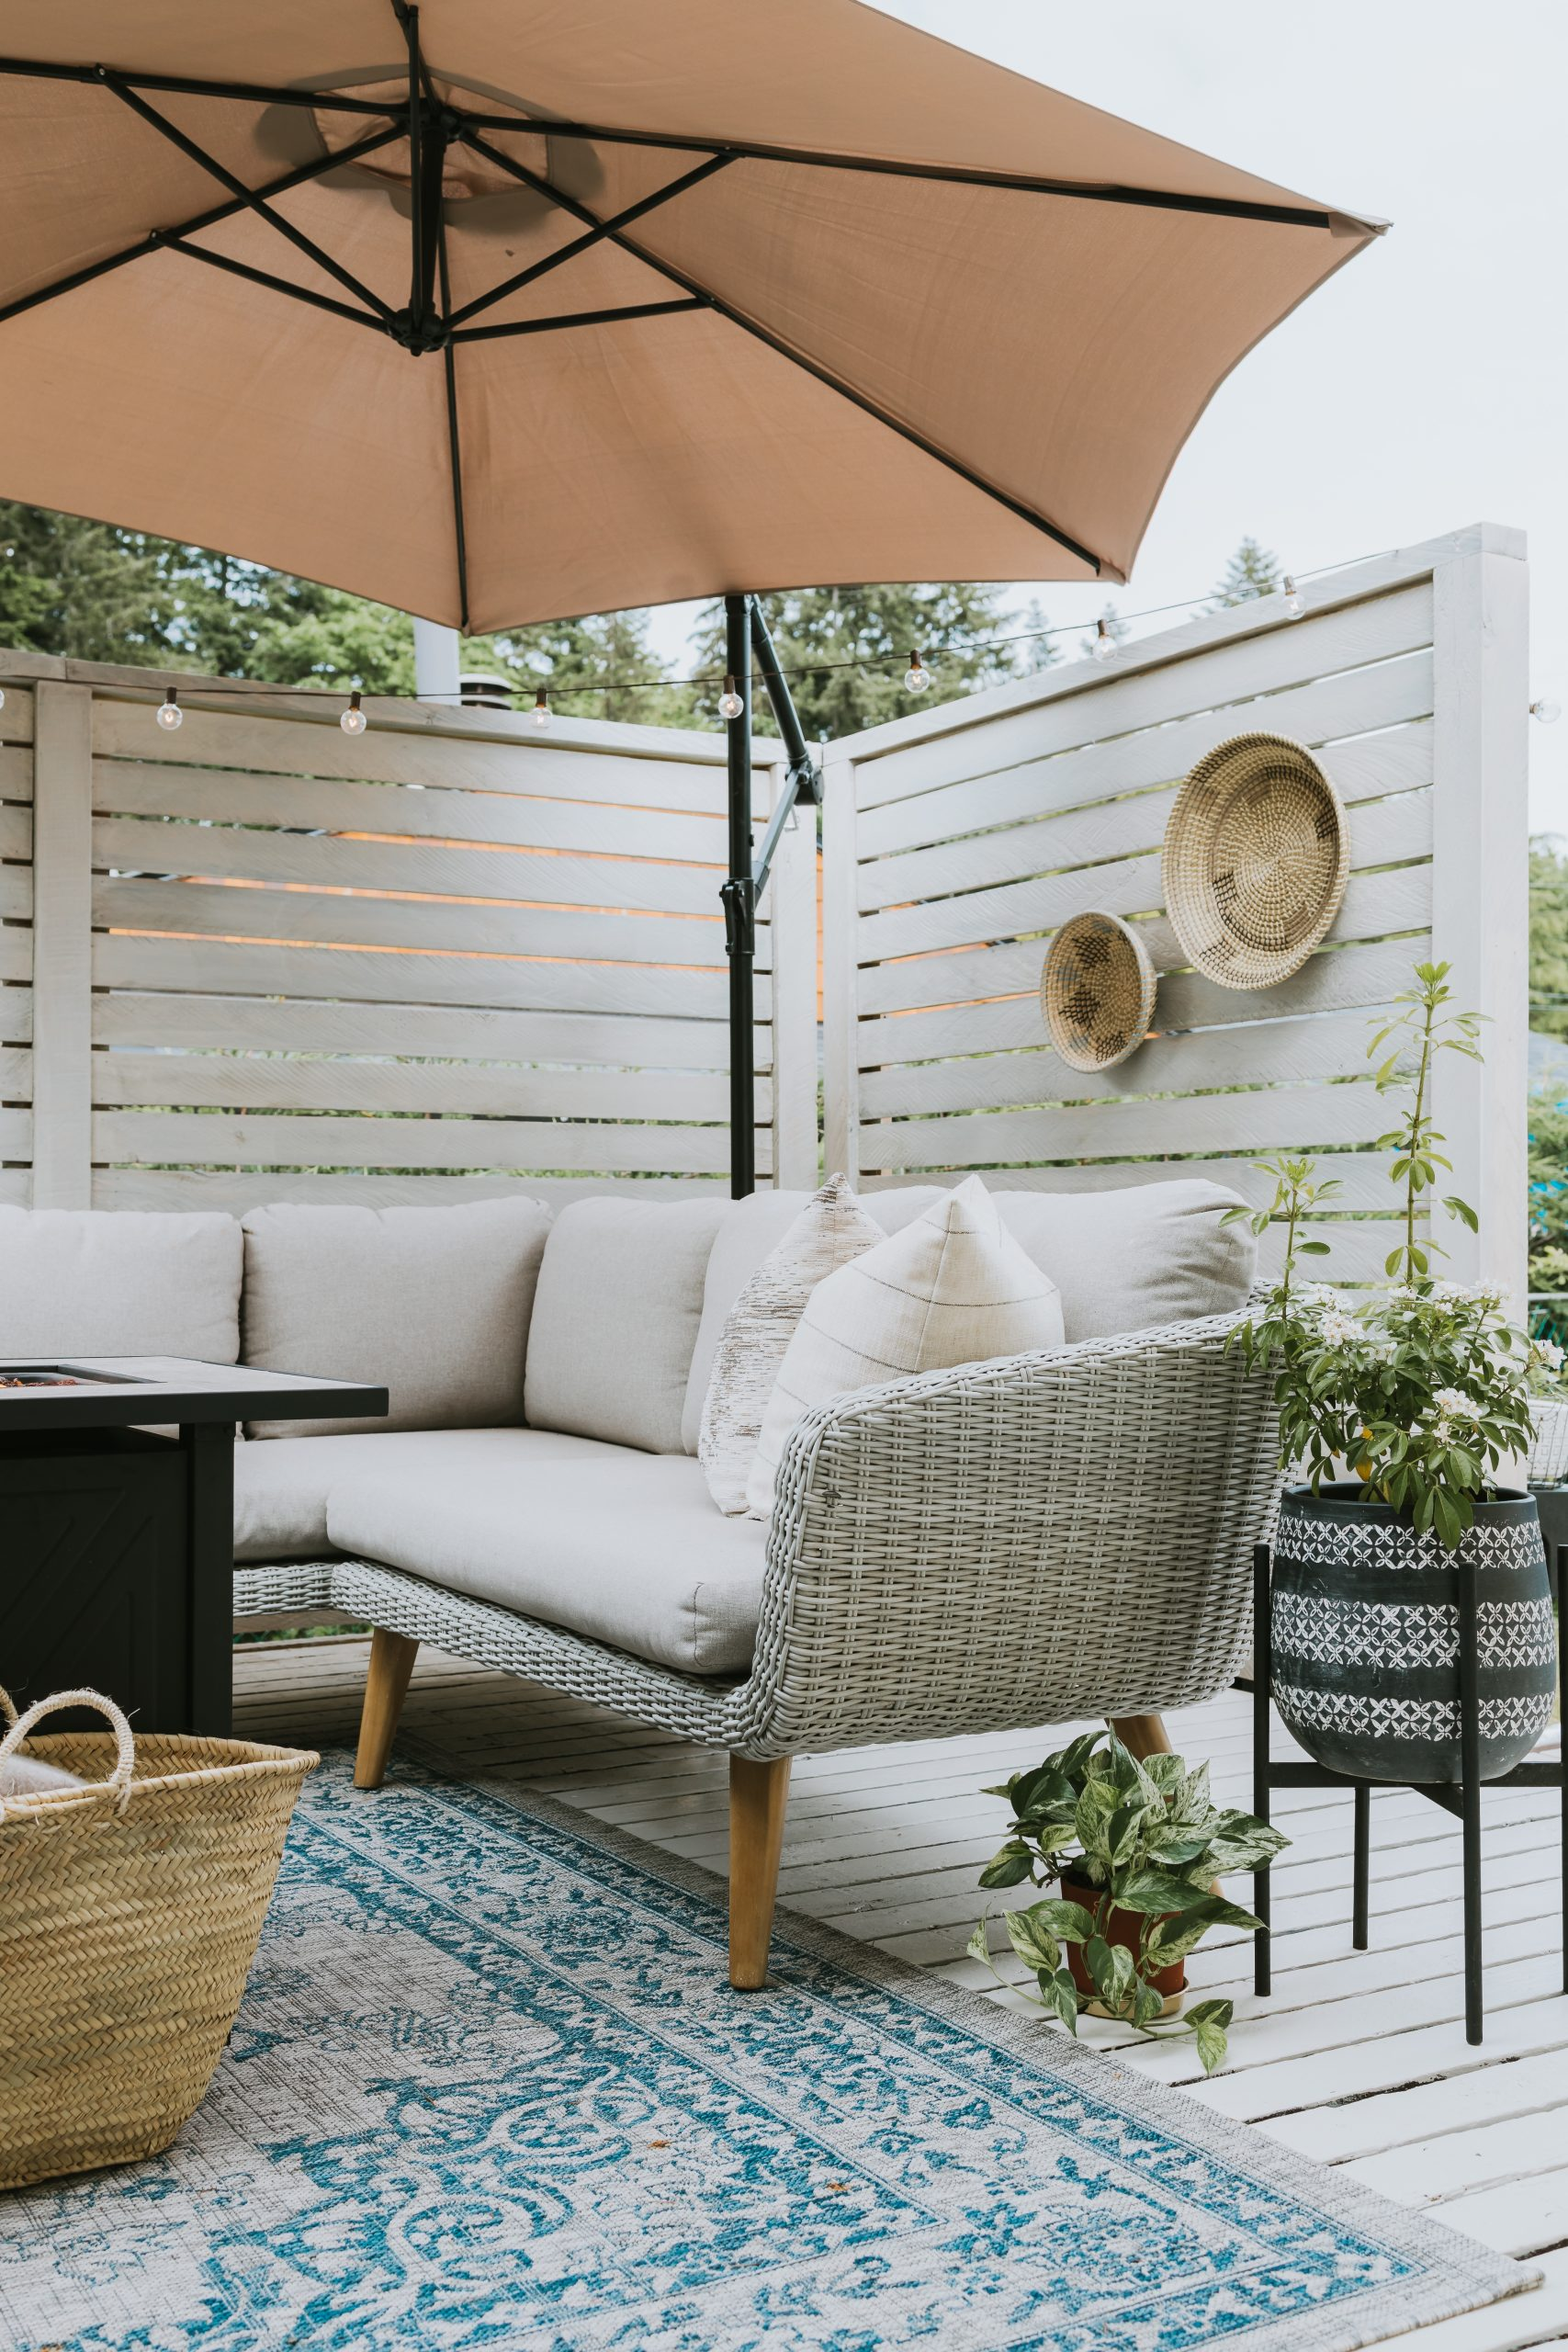 Deck Makeover Part Two. We Stained Our Privacy Panels White Navaho from Behr. Modern Minimal Deck For Summer and how we did it under 50 dollars!